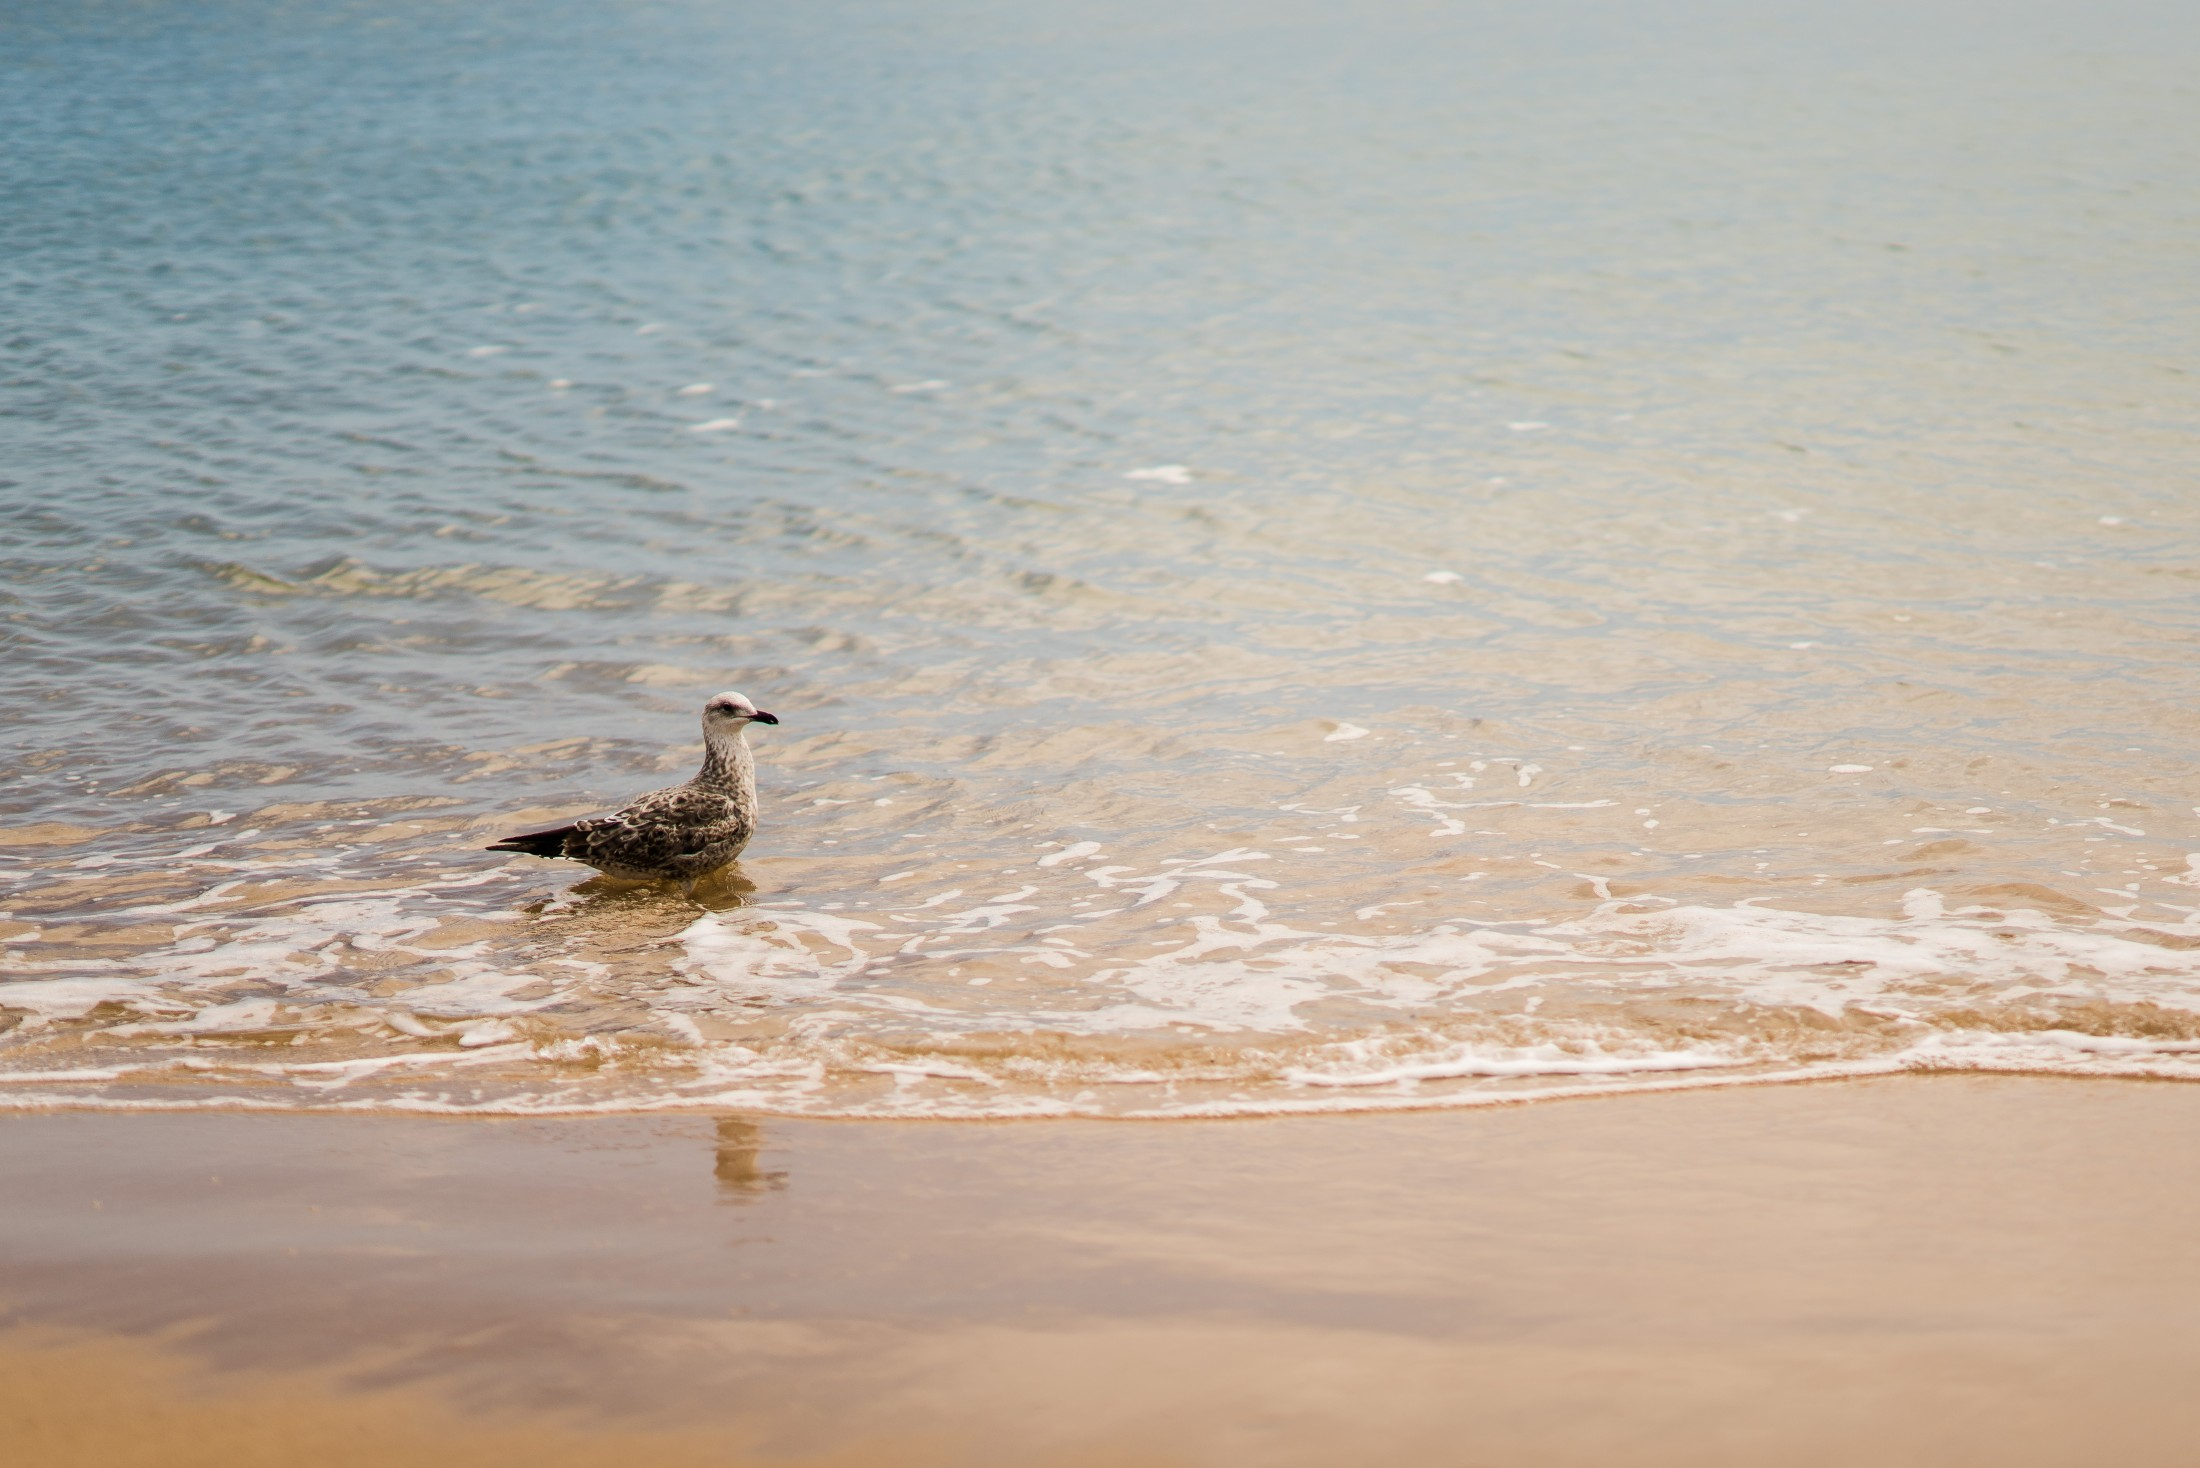 The life of a Seagull